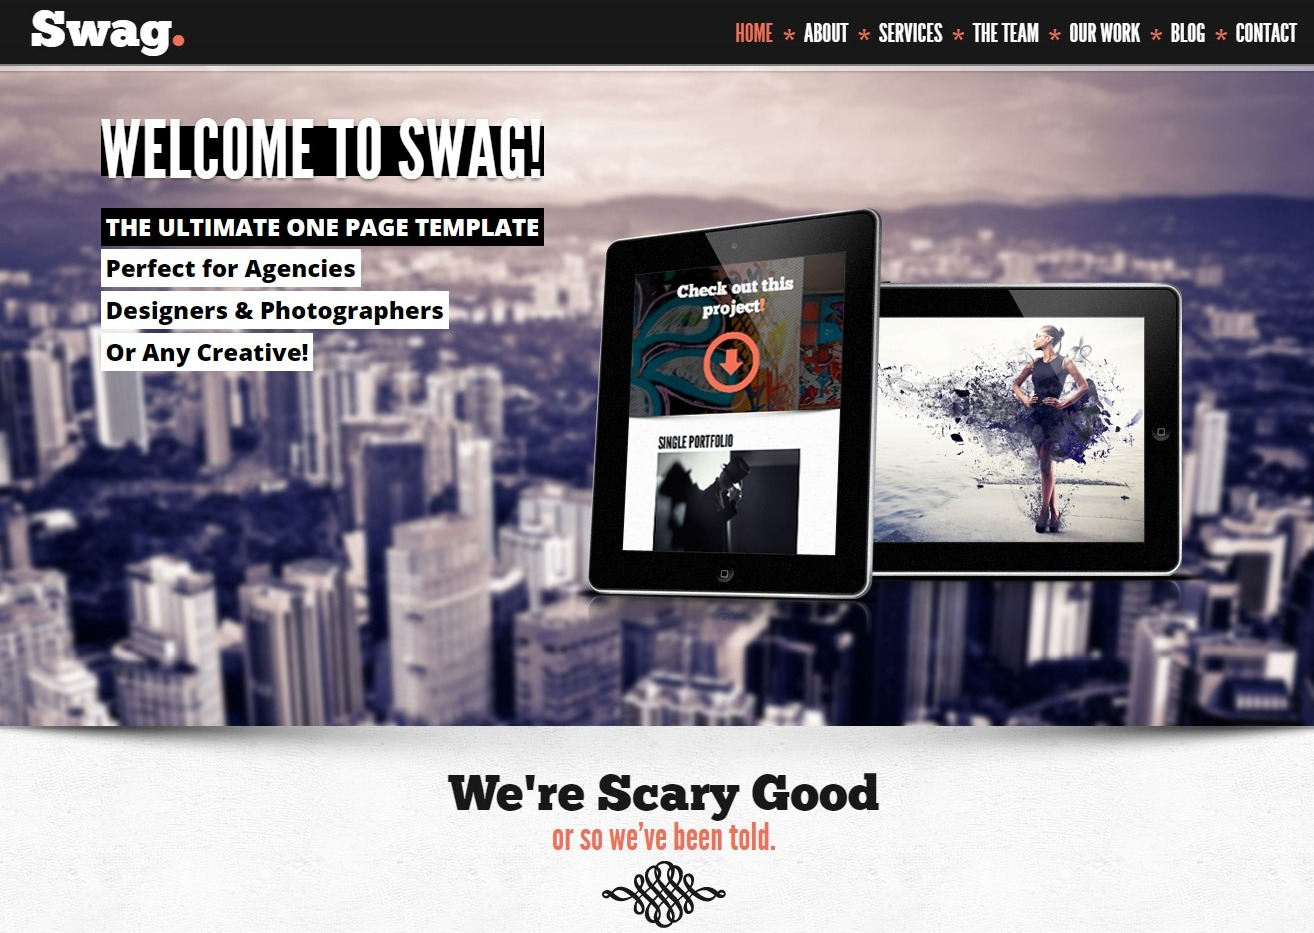 swag-one-page-website-template